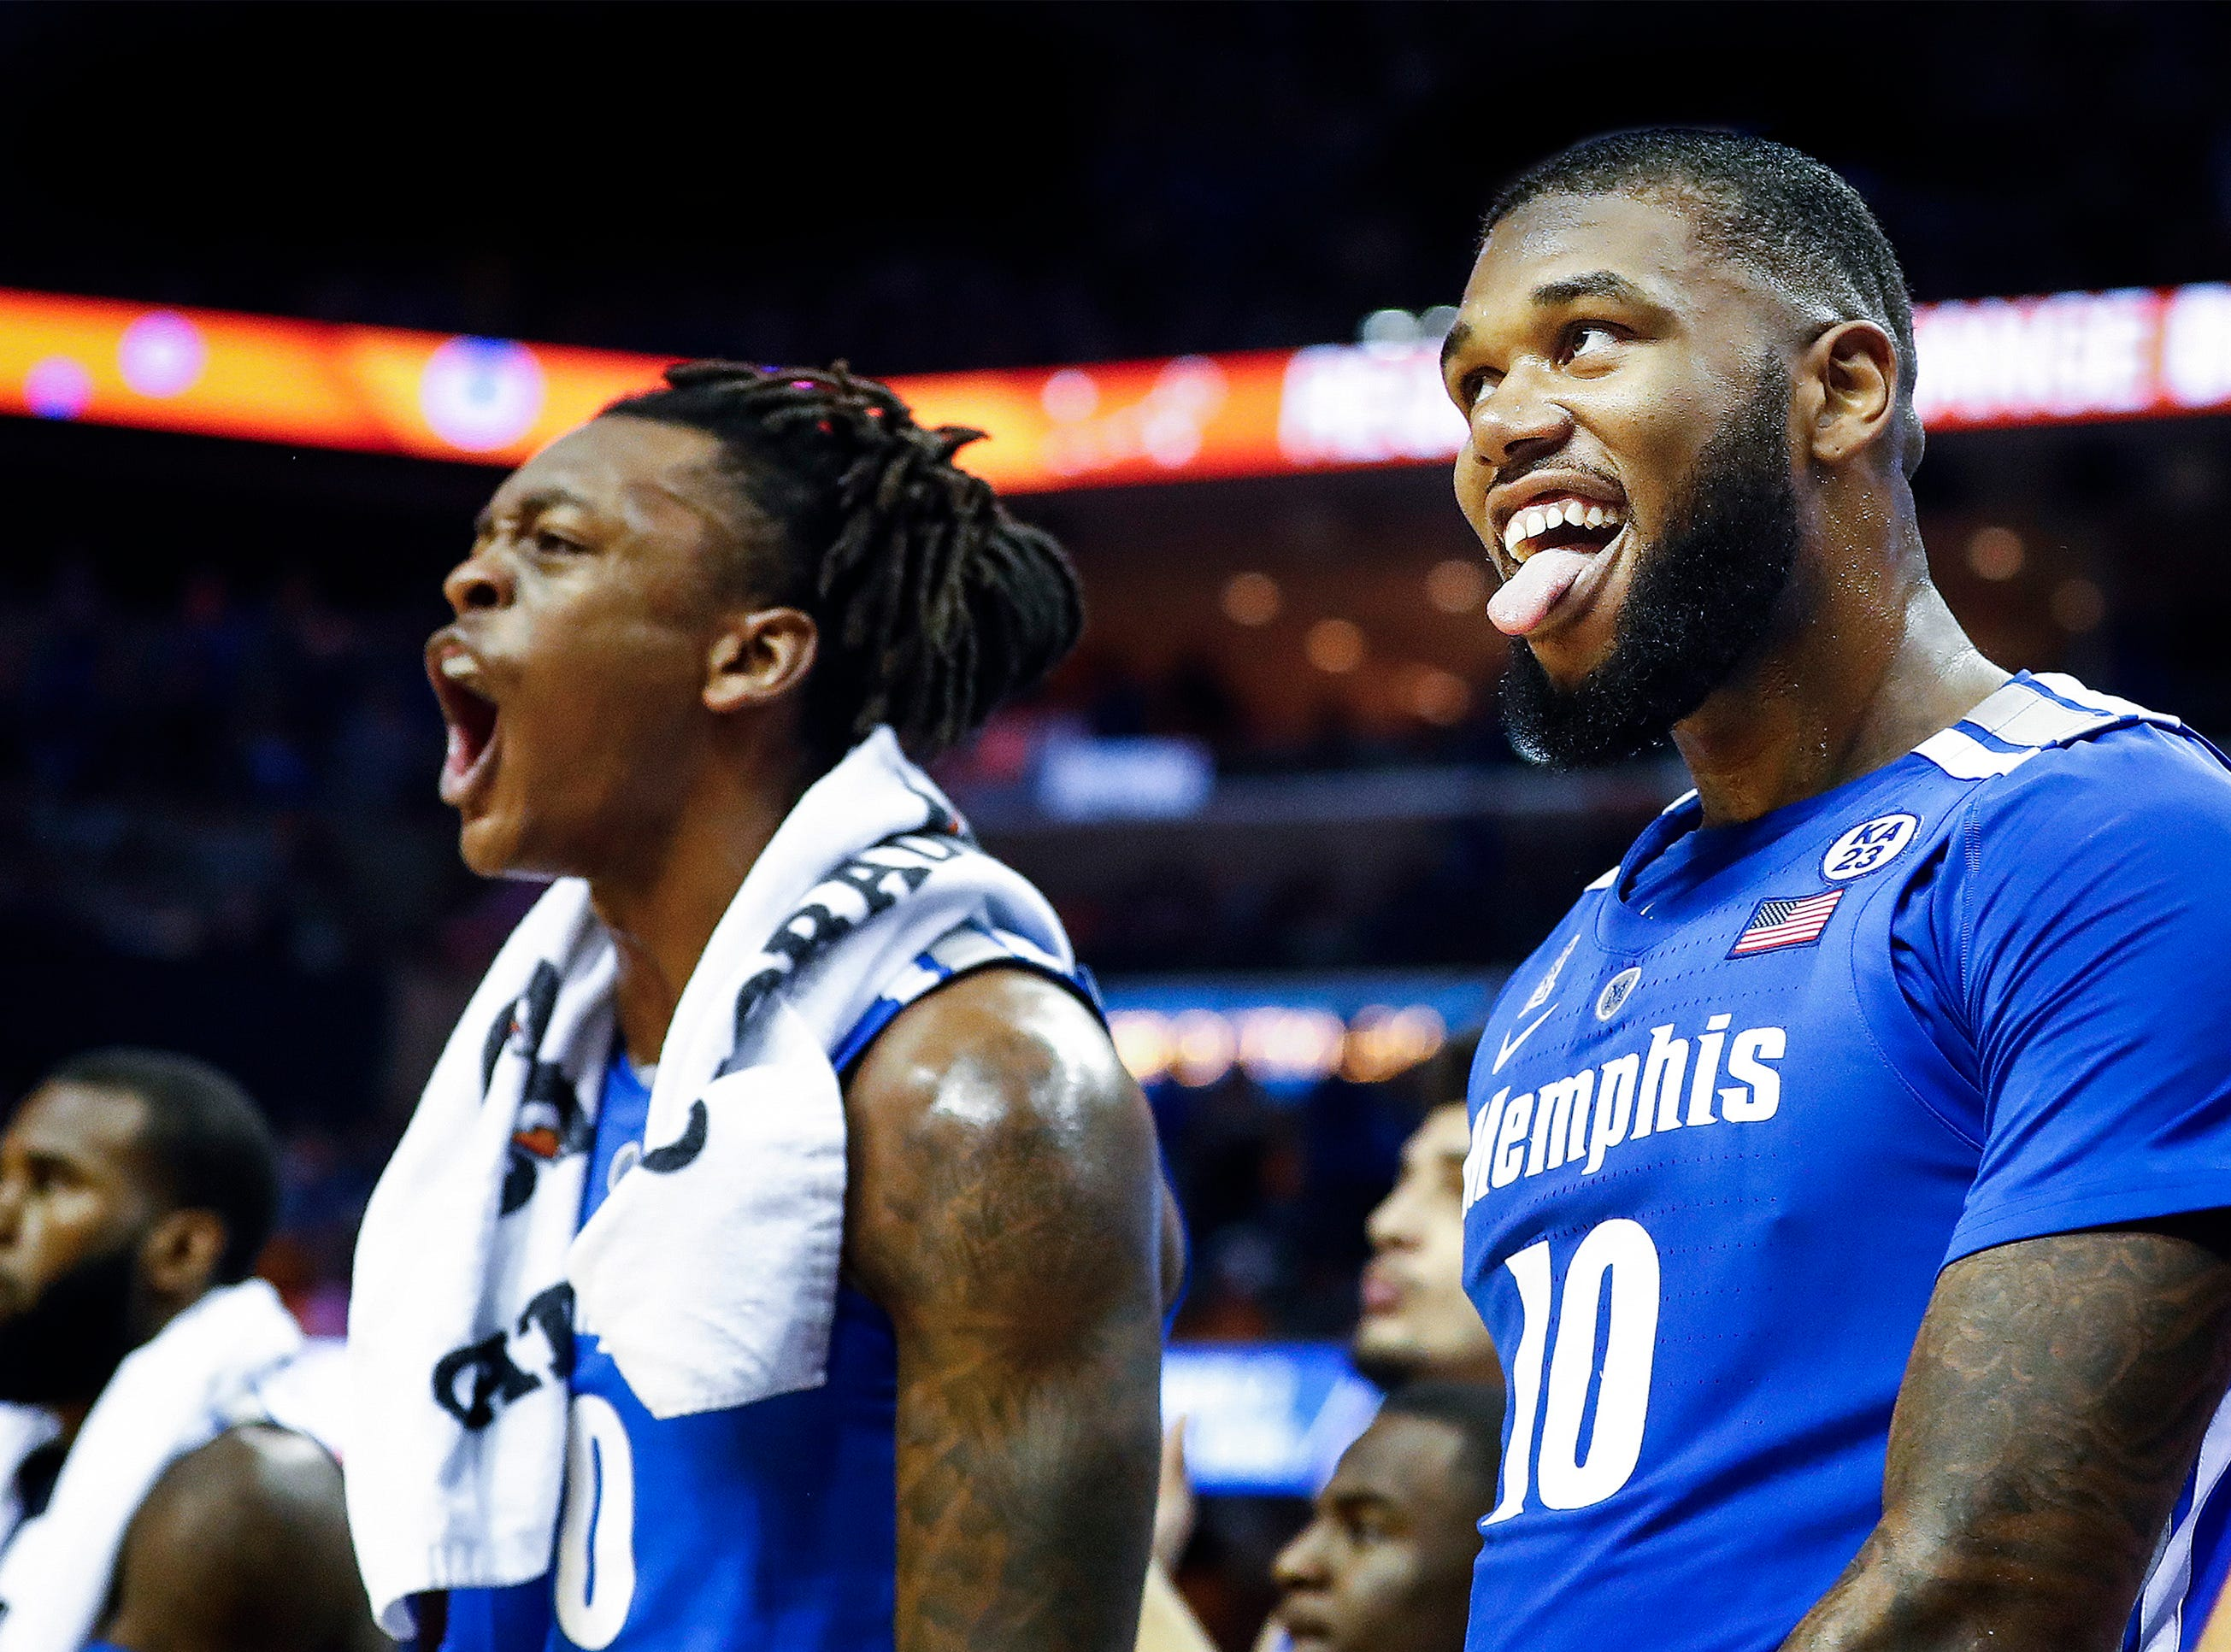 Memphis teammates Kyvon Davenport and Mike Parks Jr. (right) celebrate on the bench during action against Tennessee during action at the FedExForum, Saturday, December 15, 2018.